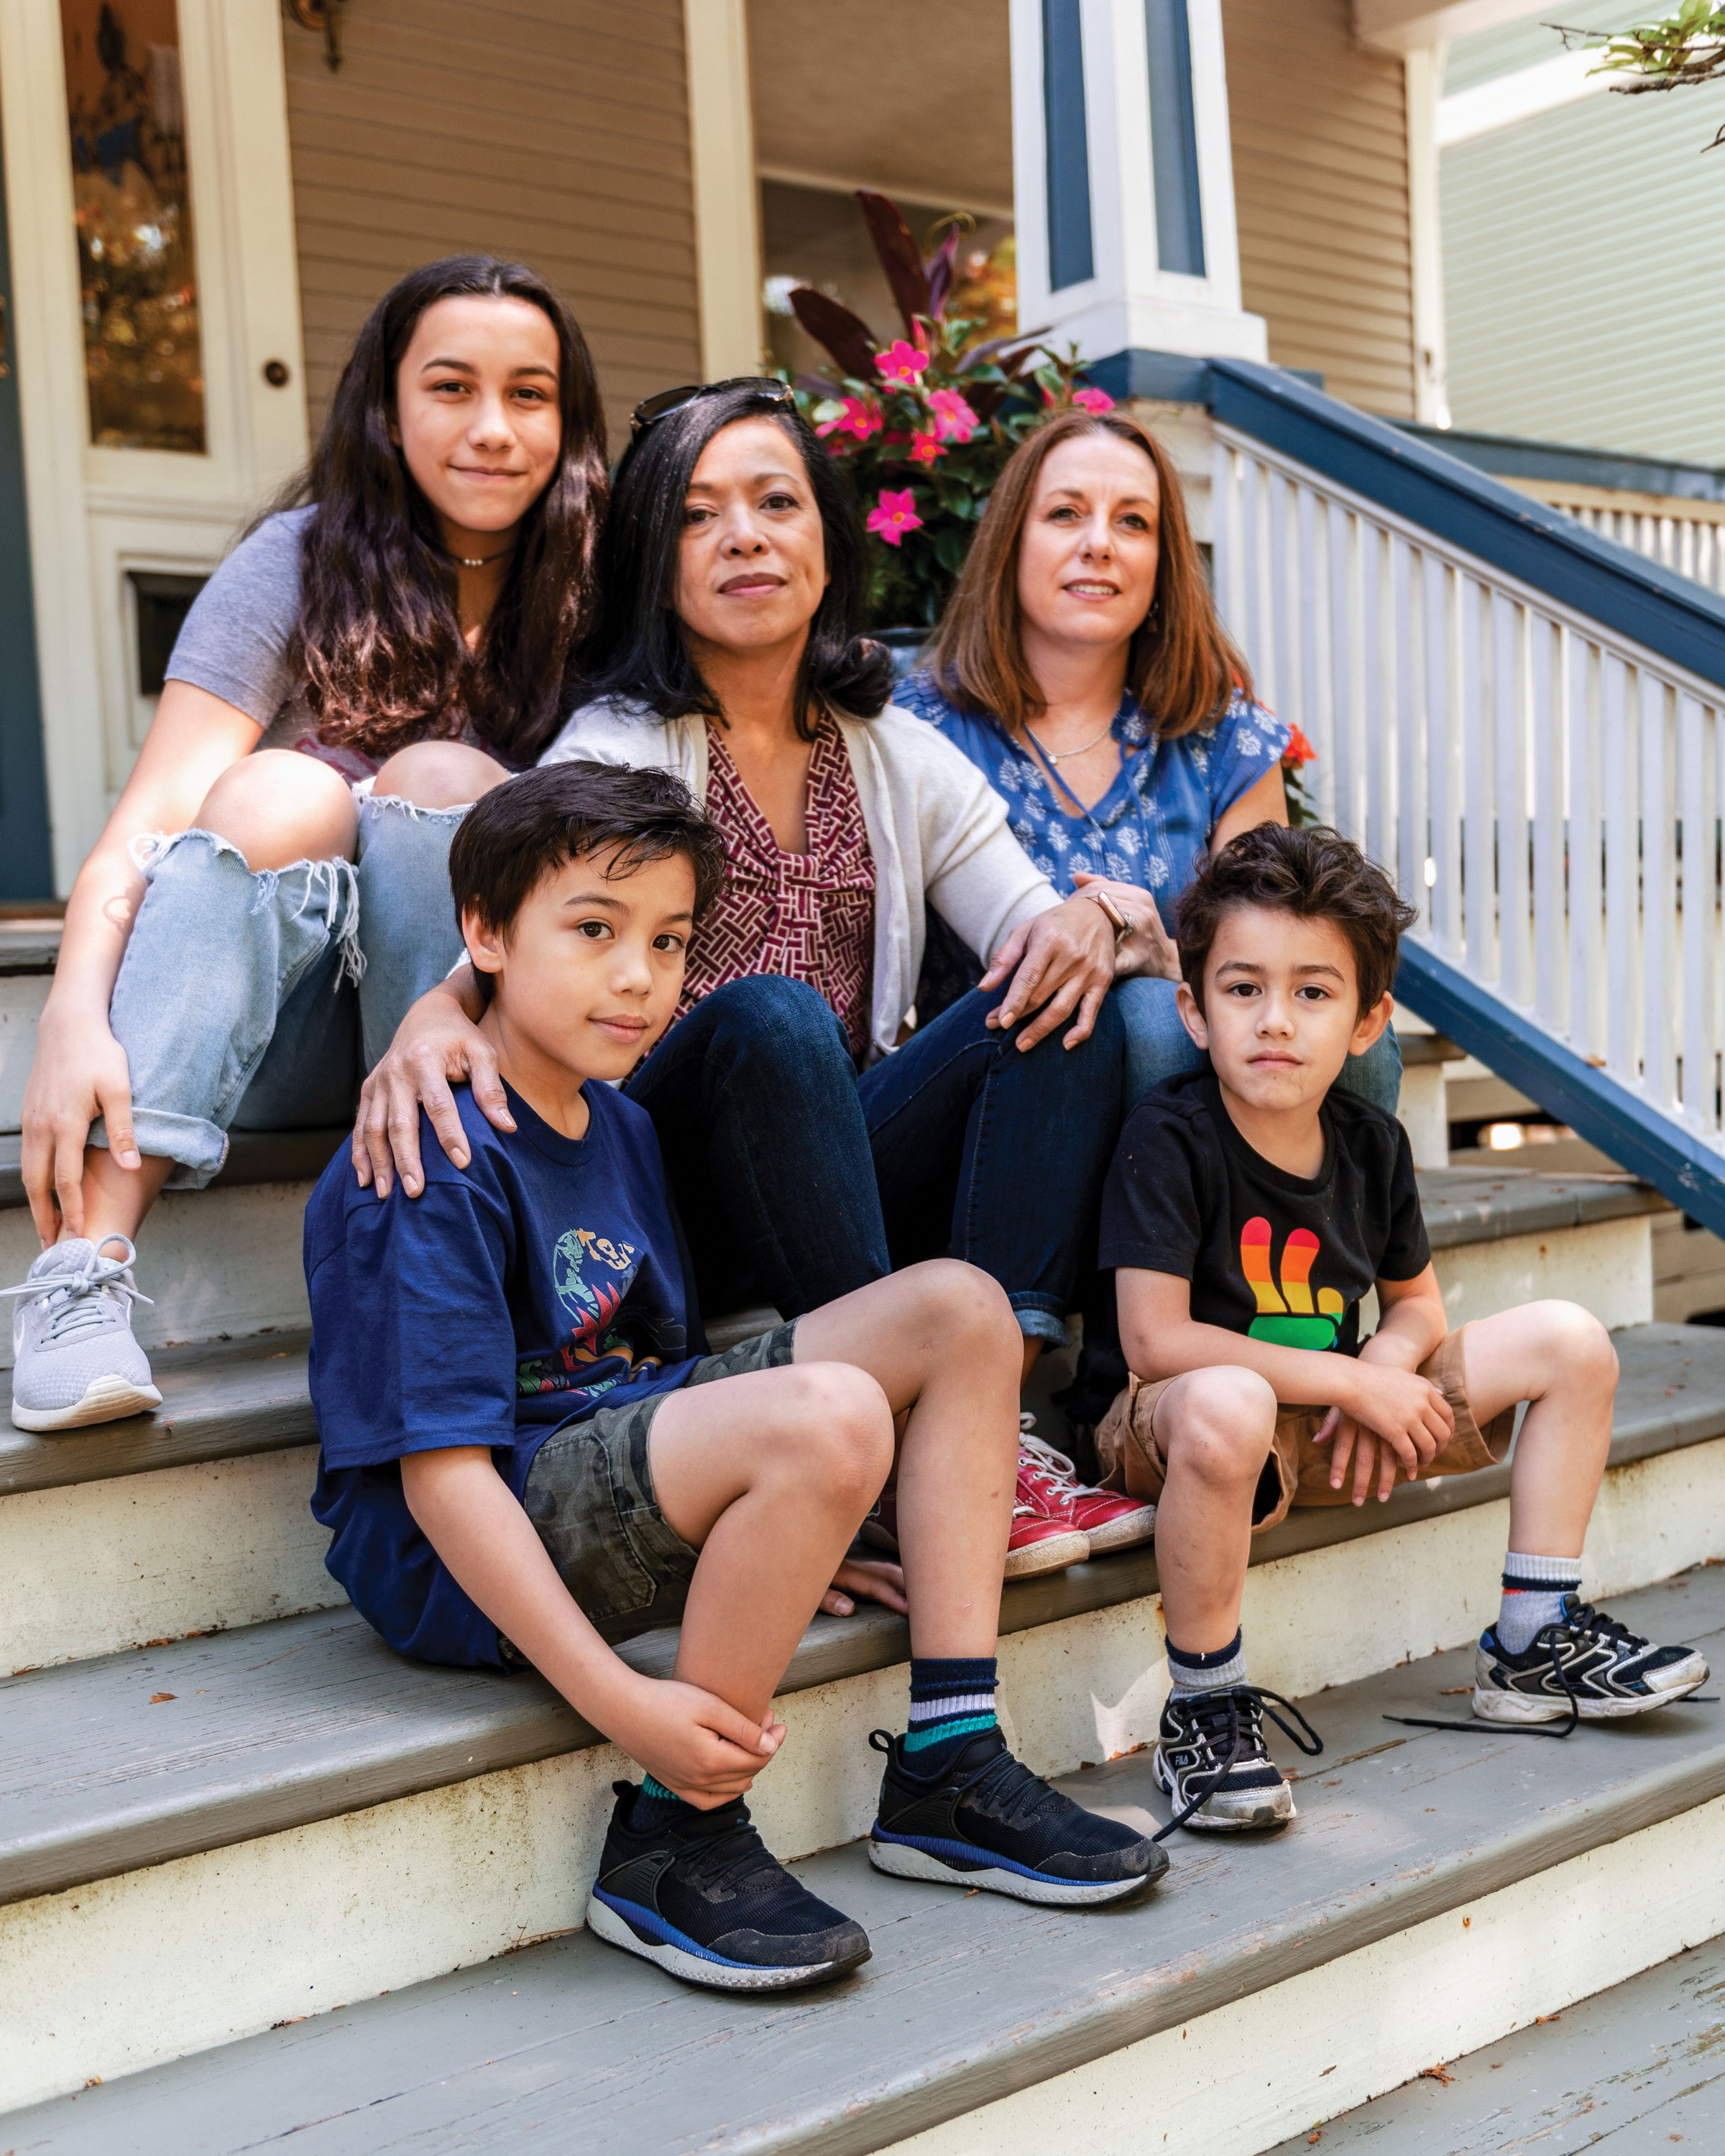 photo of parents Mercedes Santos and Theresa Volpe with their children Ava, Jaidon, and Lennox on their front stoop